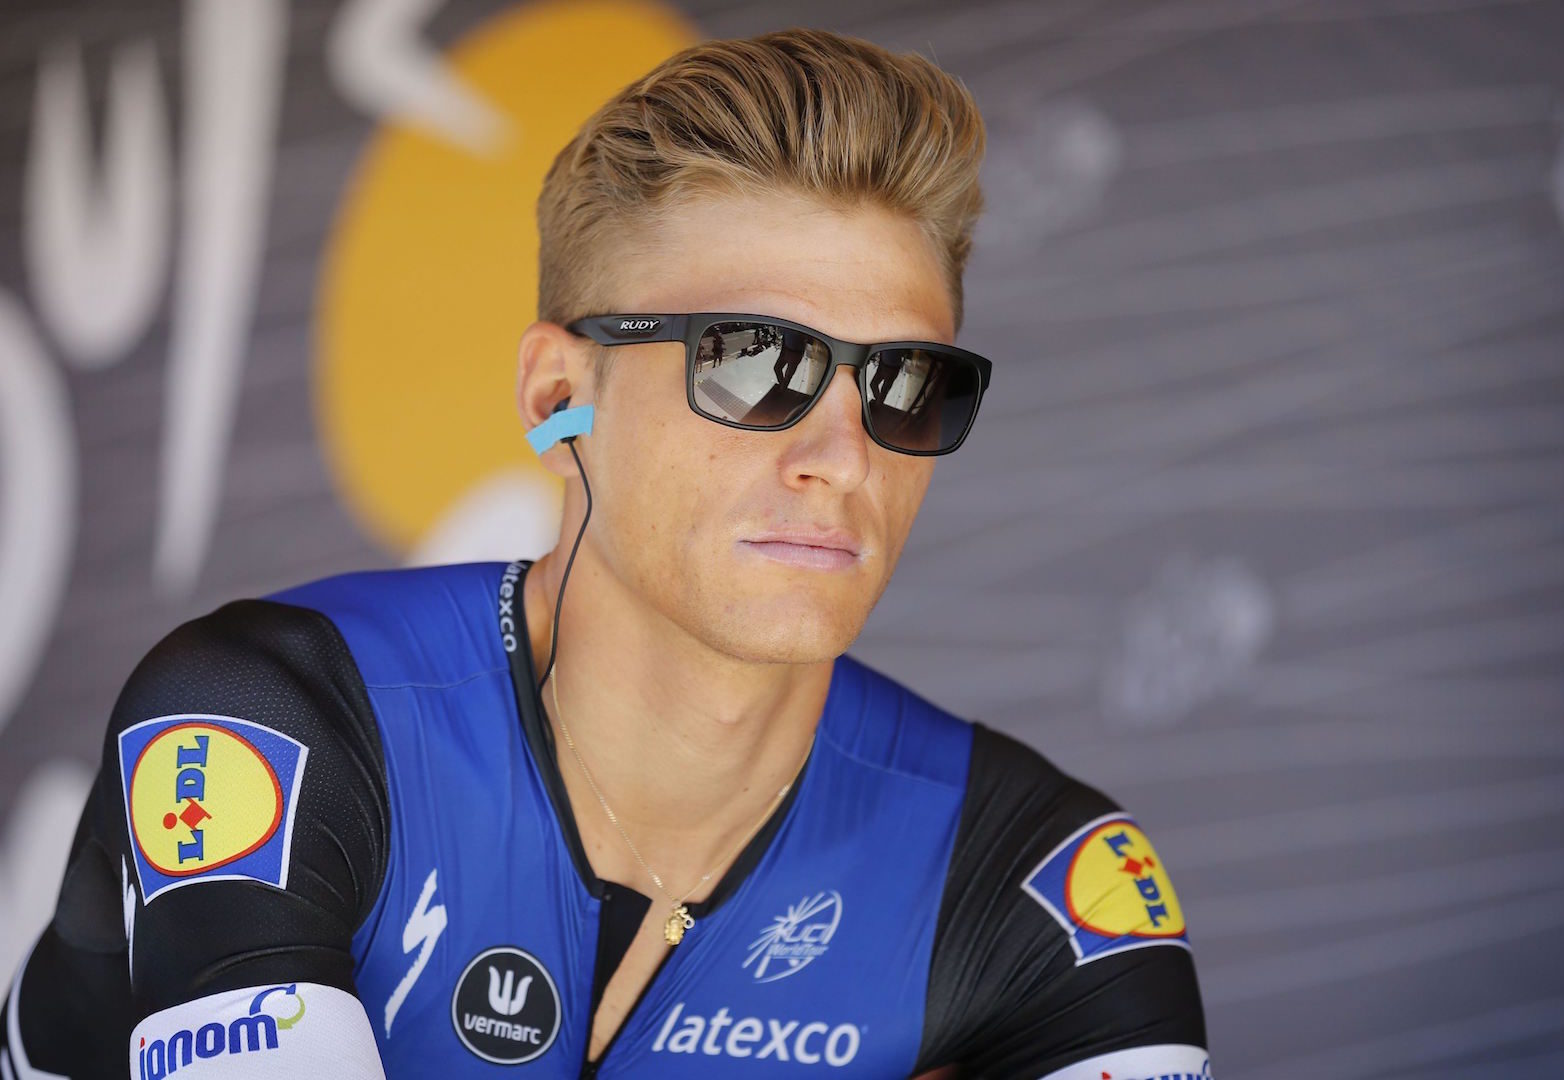 Villars-les-Dombes Parc des Oiseaux- France - wielrennen - cycling - radsport - cyclisme - Marcel Kittel (GER-Etixx-QuickStep) pictured during stage 14 of the 2016 Tour de France from Montelimar to Villars-les-Dombes Parc des Oiseaux, 208.00 km - photo Dion Kerckhoffs/Tim van Wichelen/Cor Vos © 2016